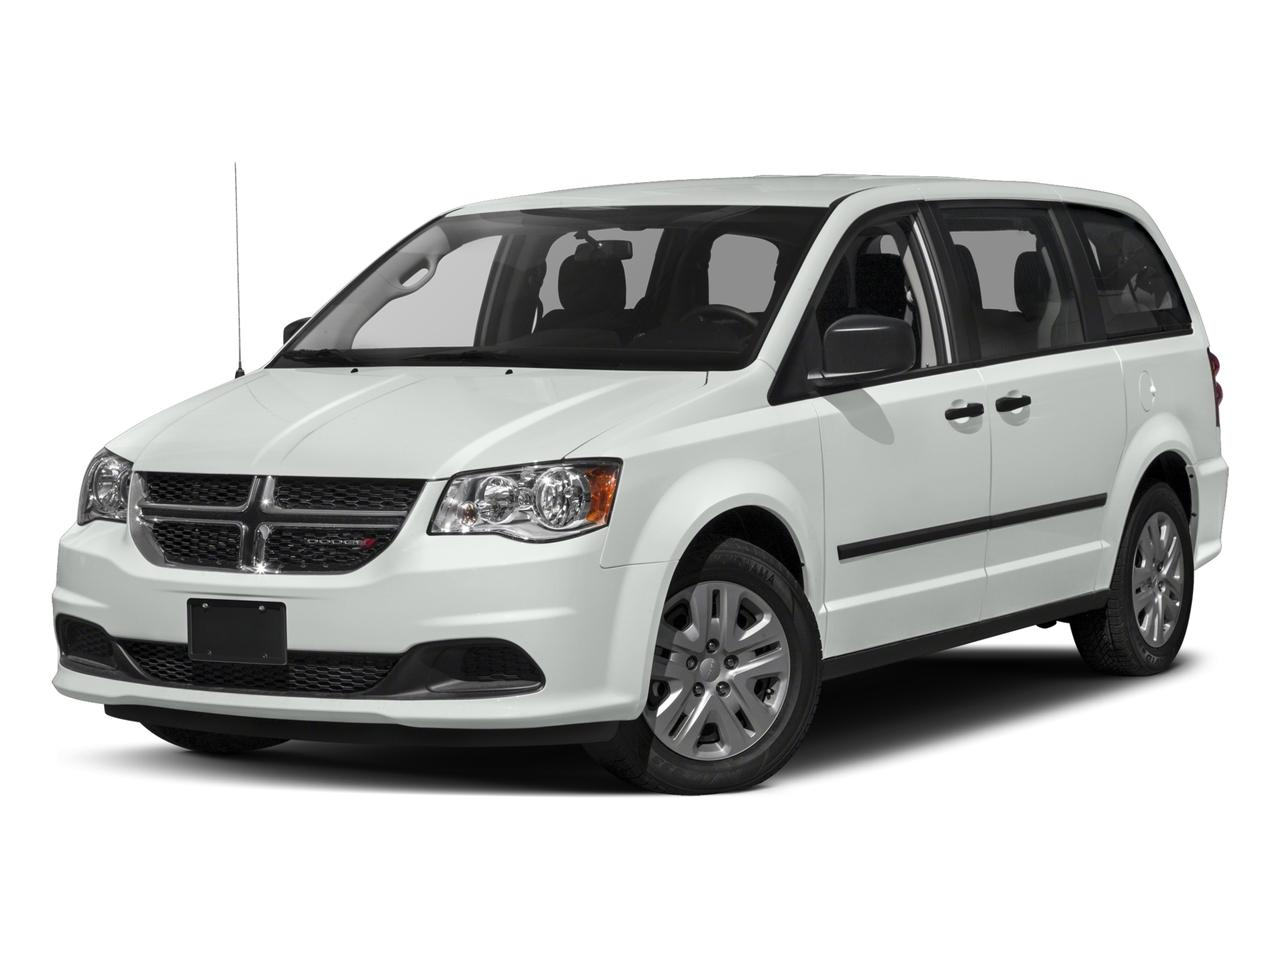 2017 Dodge Grand Caravan Vehicle Photo in Columbia, TN 38401